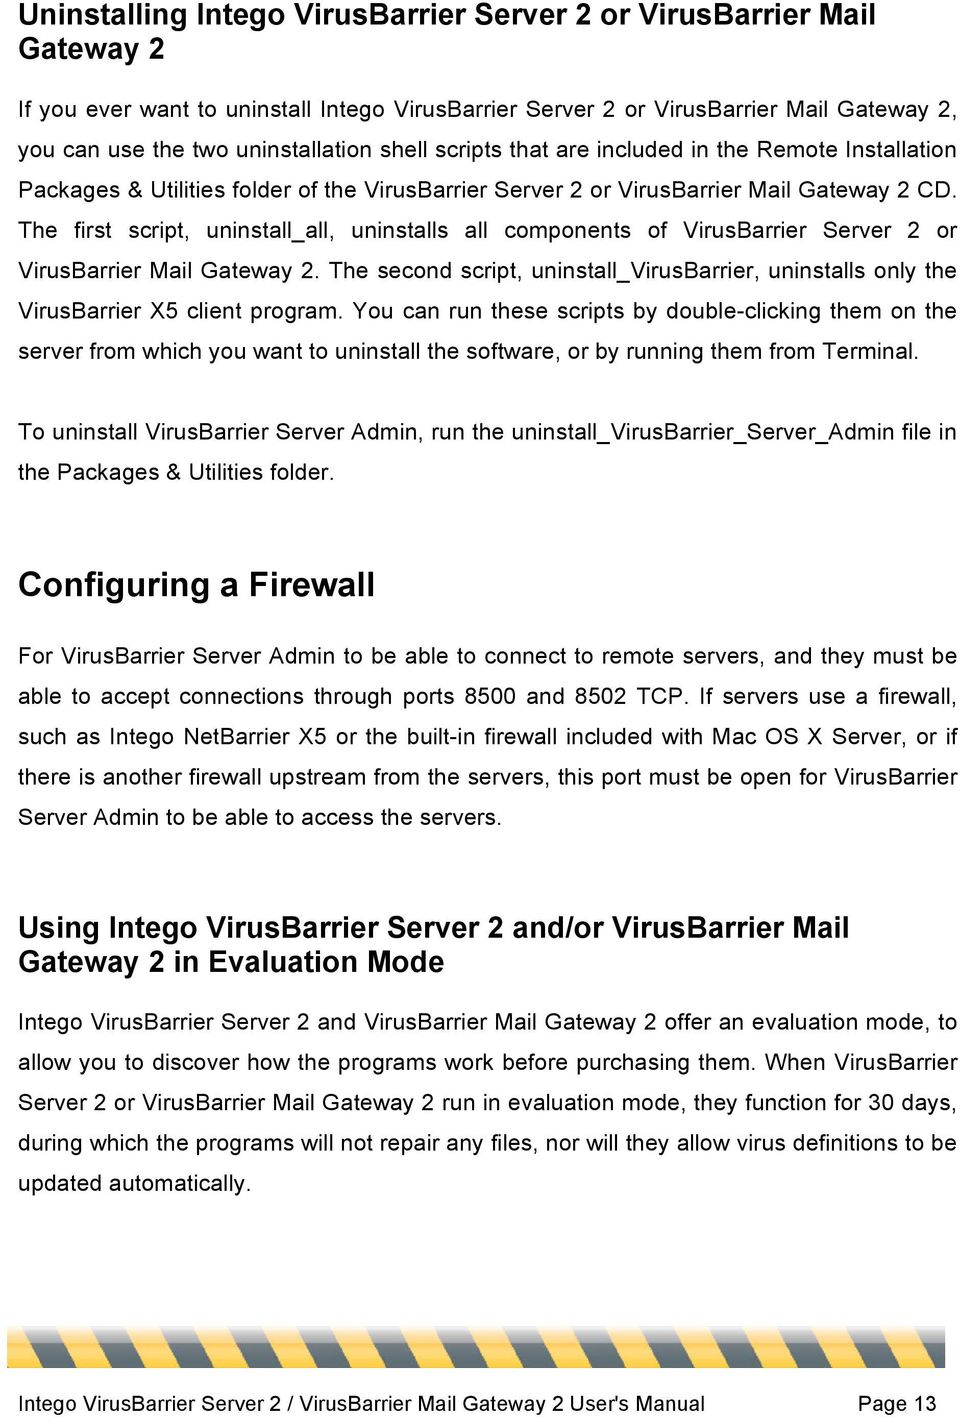 The first script, uninstall_all, uninstalls all components of VirusBarrier Server 2 or VirusBarrier Mail Gateway 2.